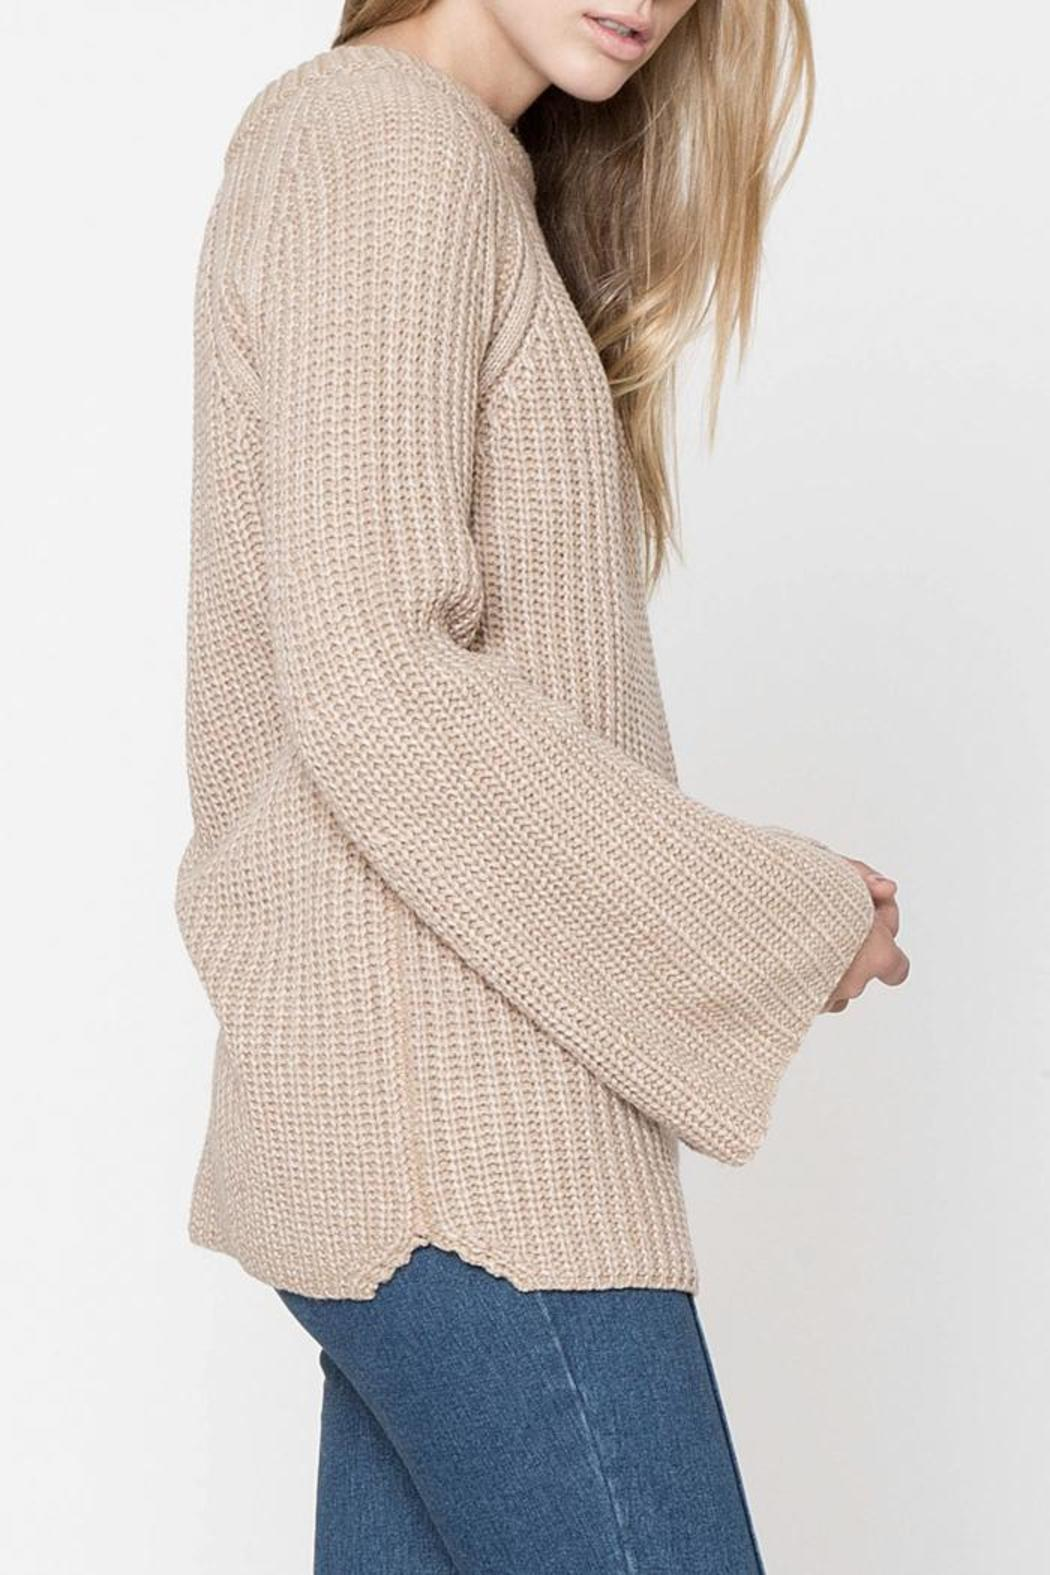 Movint Bell-Sleeve Pullover Sweater from SoHo by Mo:Vint — Shoptiques